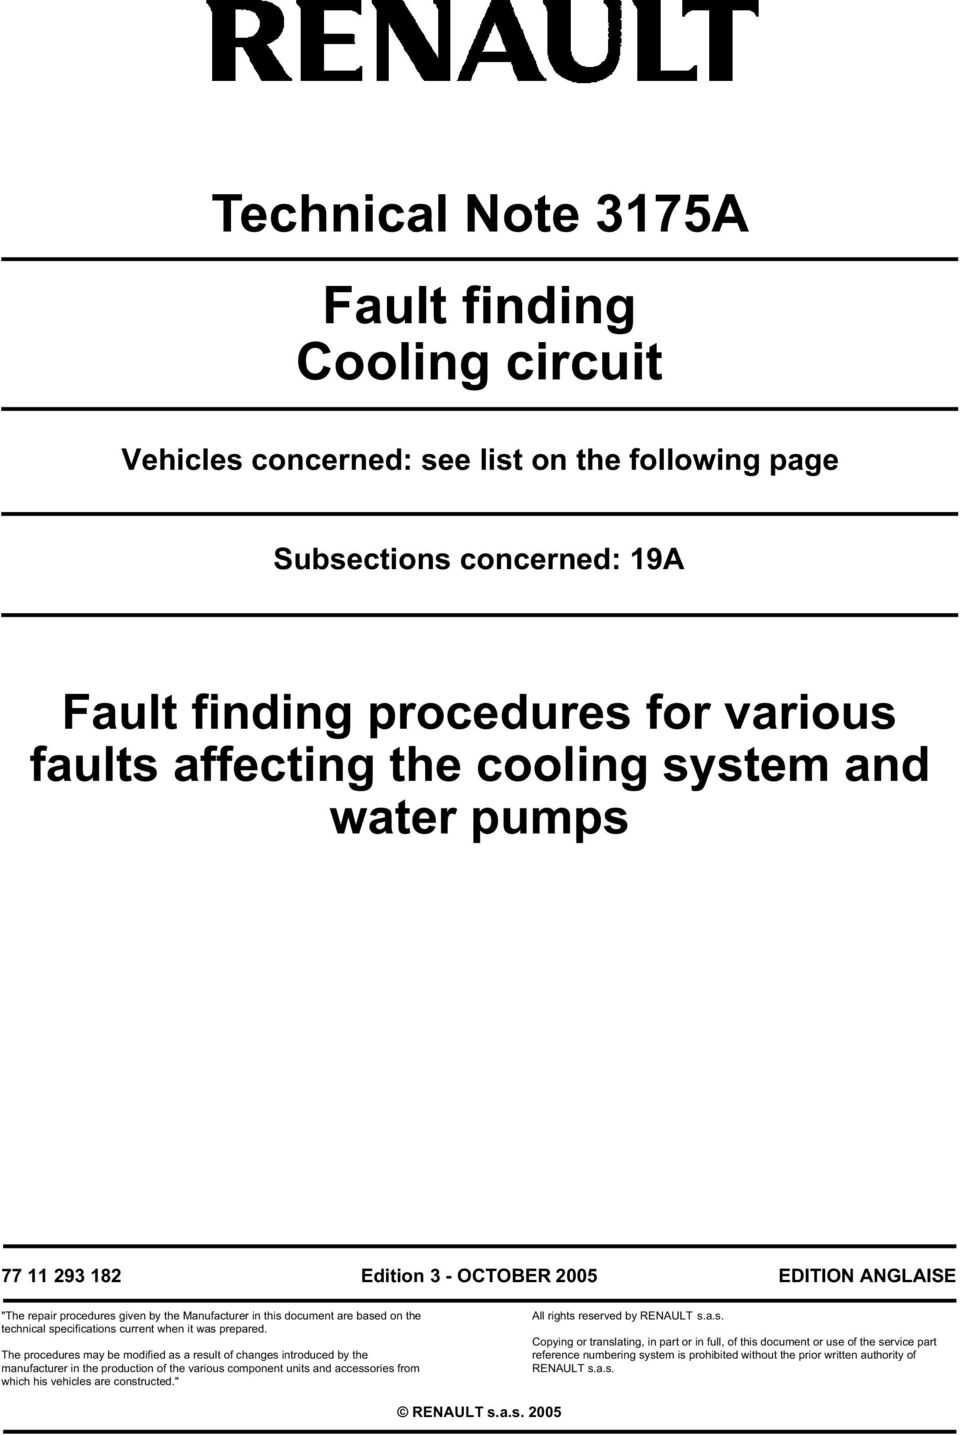 Technical Note 3175a Fault Finding Cooling Circuit Pdf Renault Engine Diagram Prepared The Procedures May Be Modified As A Result Of Changes Introduced By Manufacturer